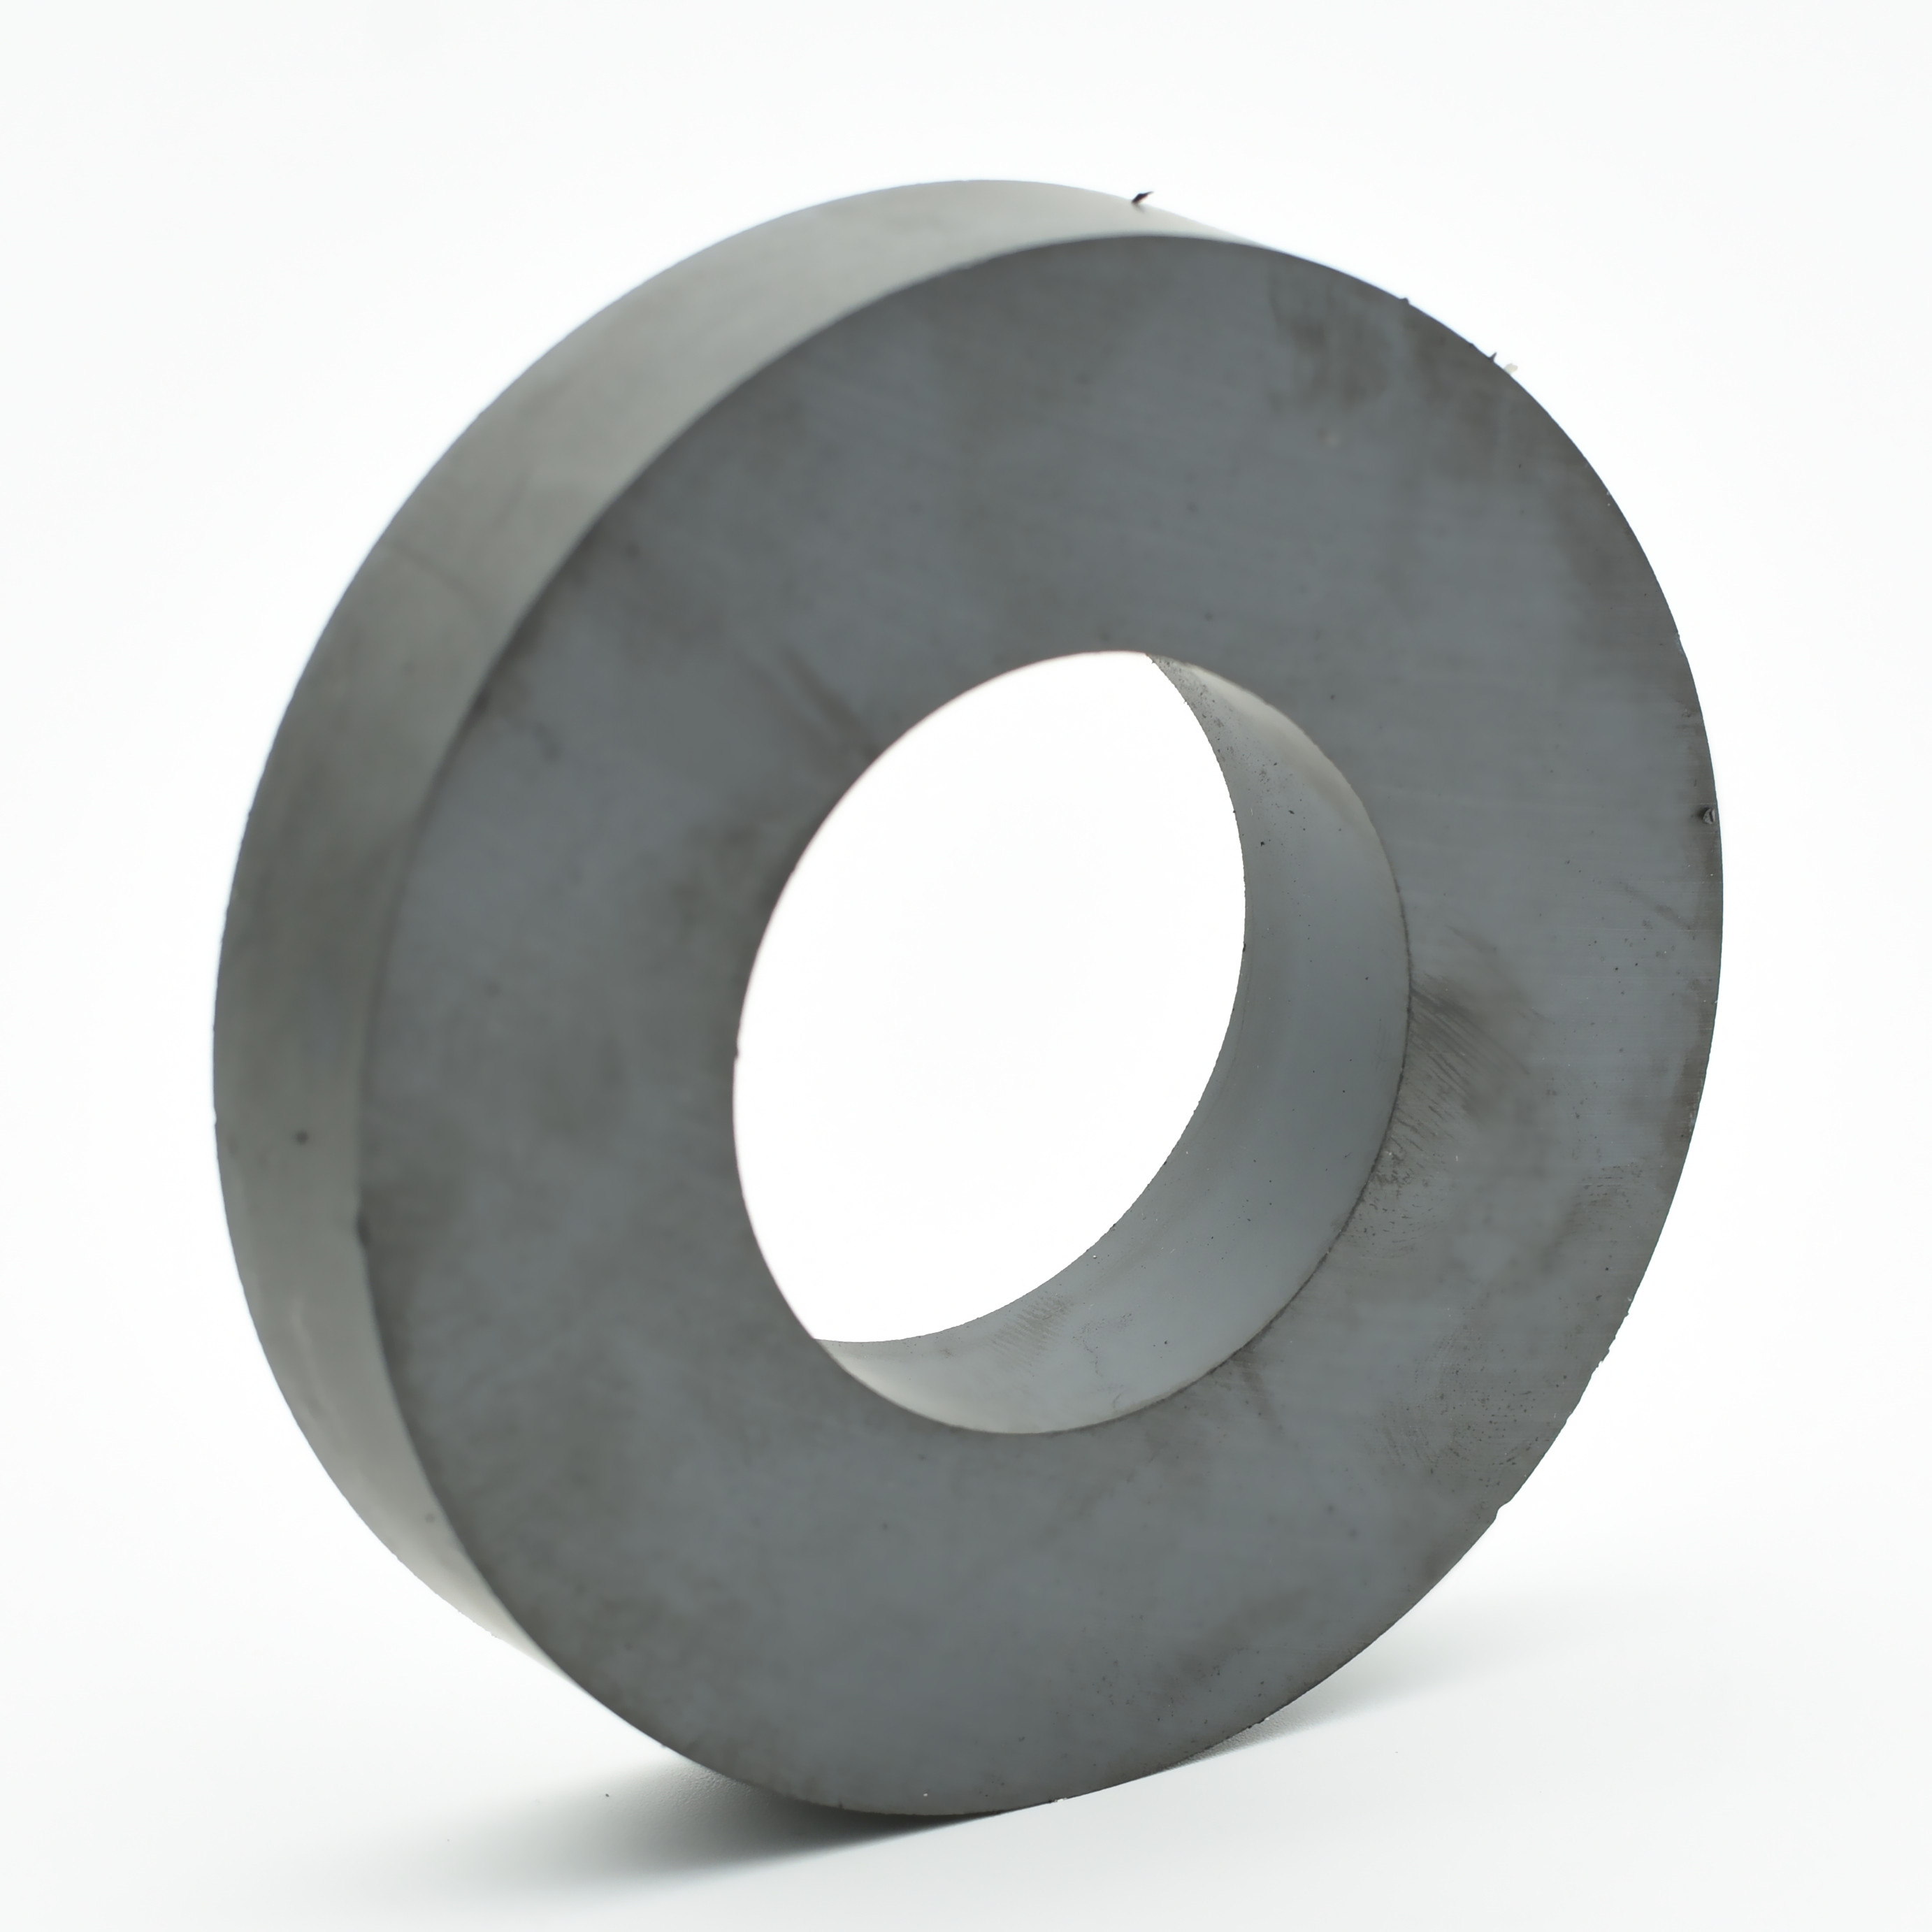 <strong>Ferrite</strong> Ring <strong>Magnet</strong> Ceramic C8 Permanent <strong>Magnets</strong> 80x40x15mm